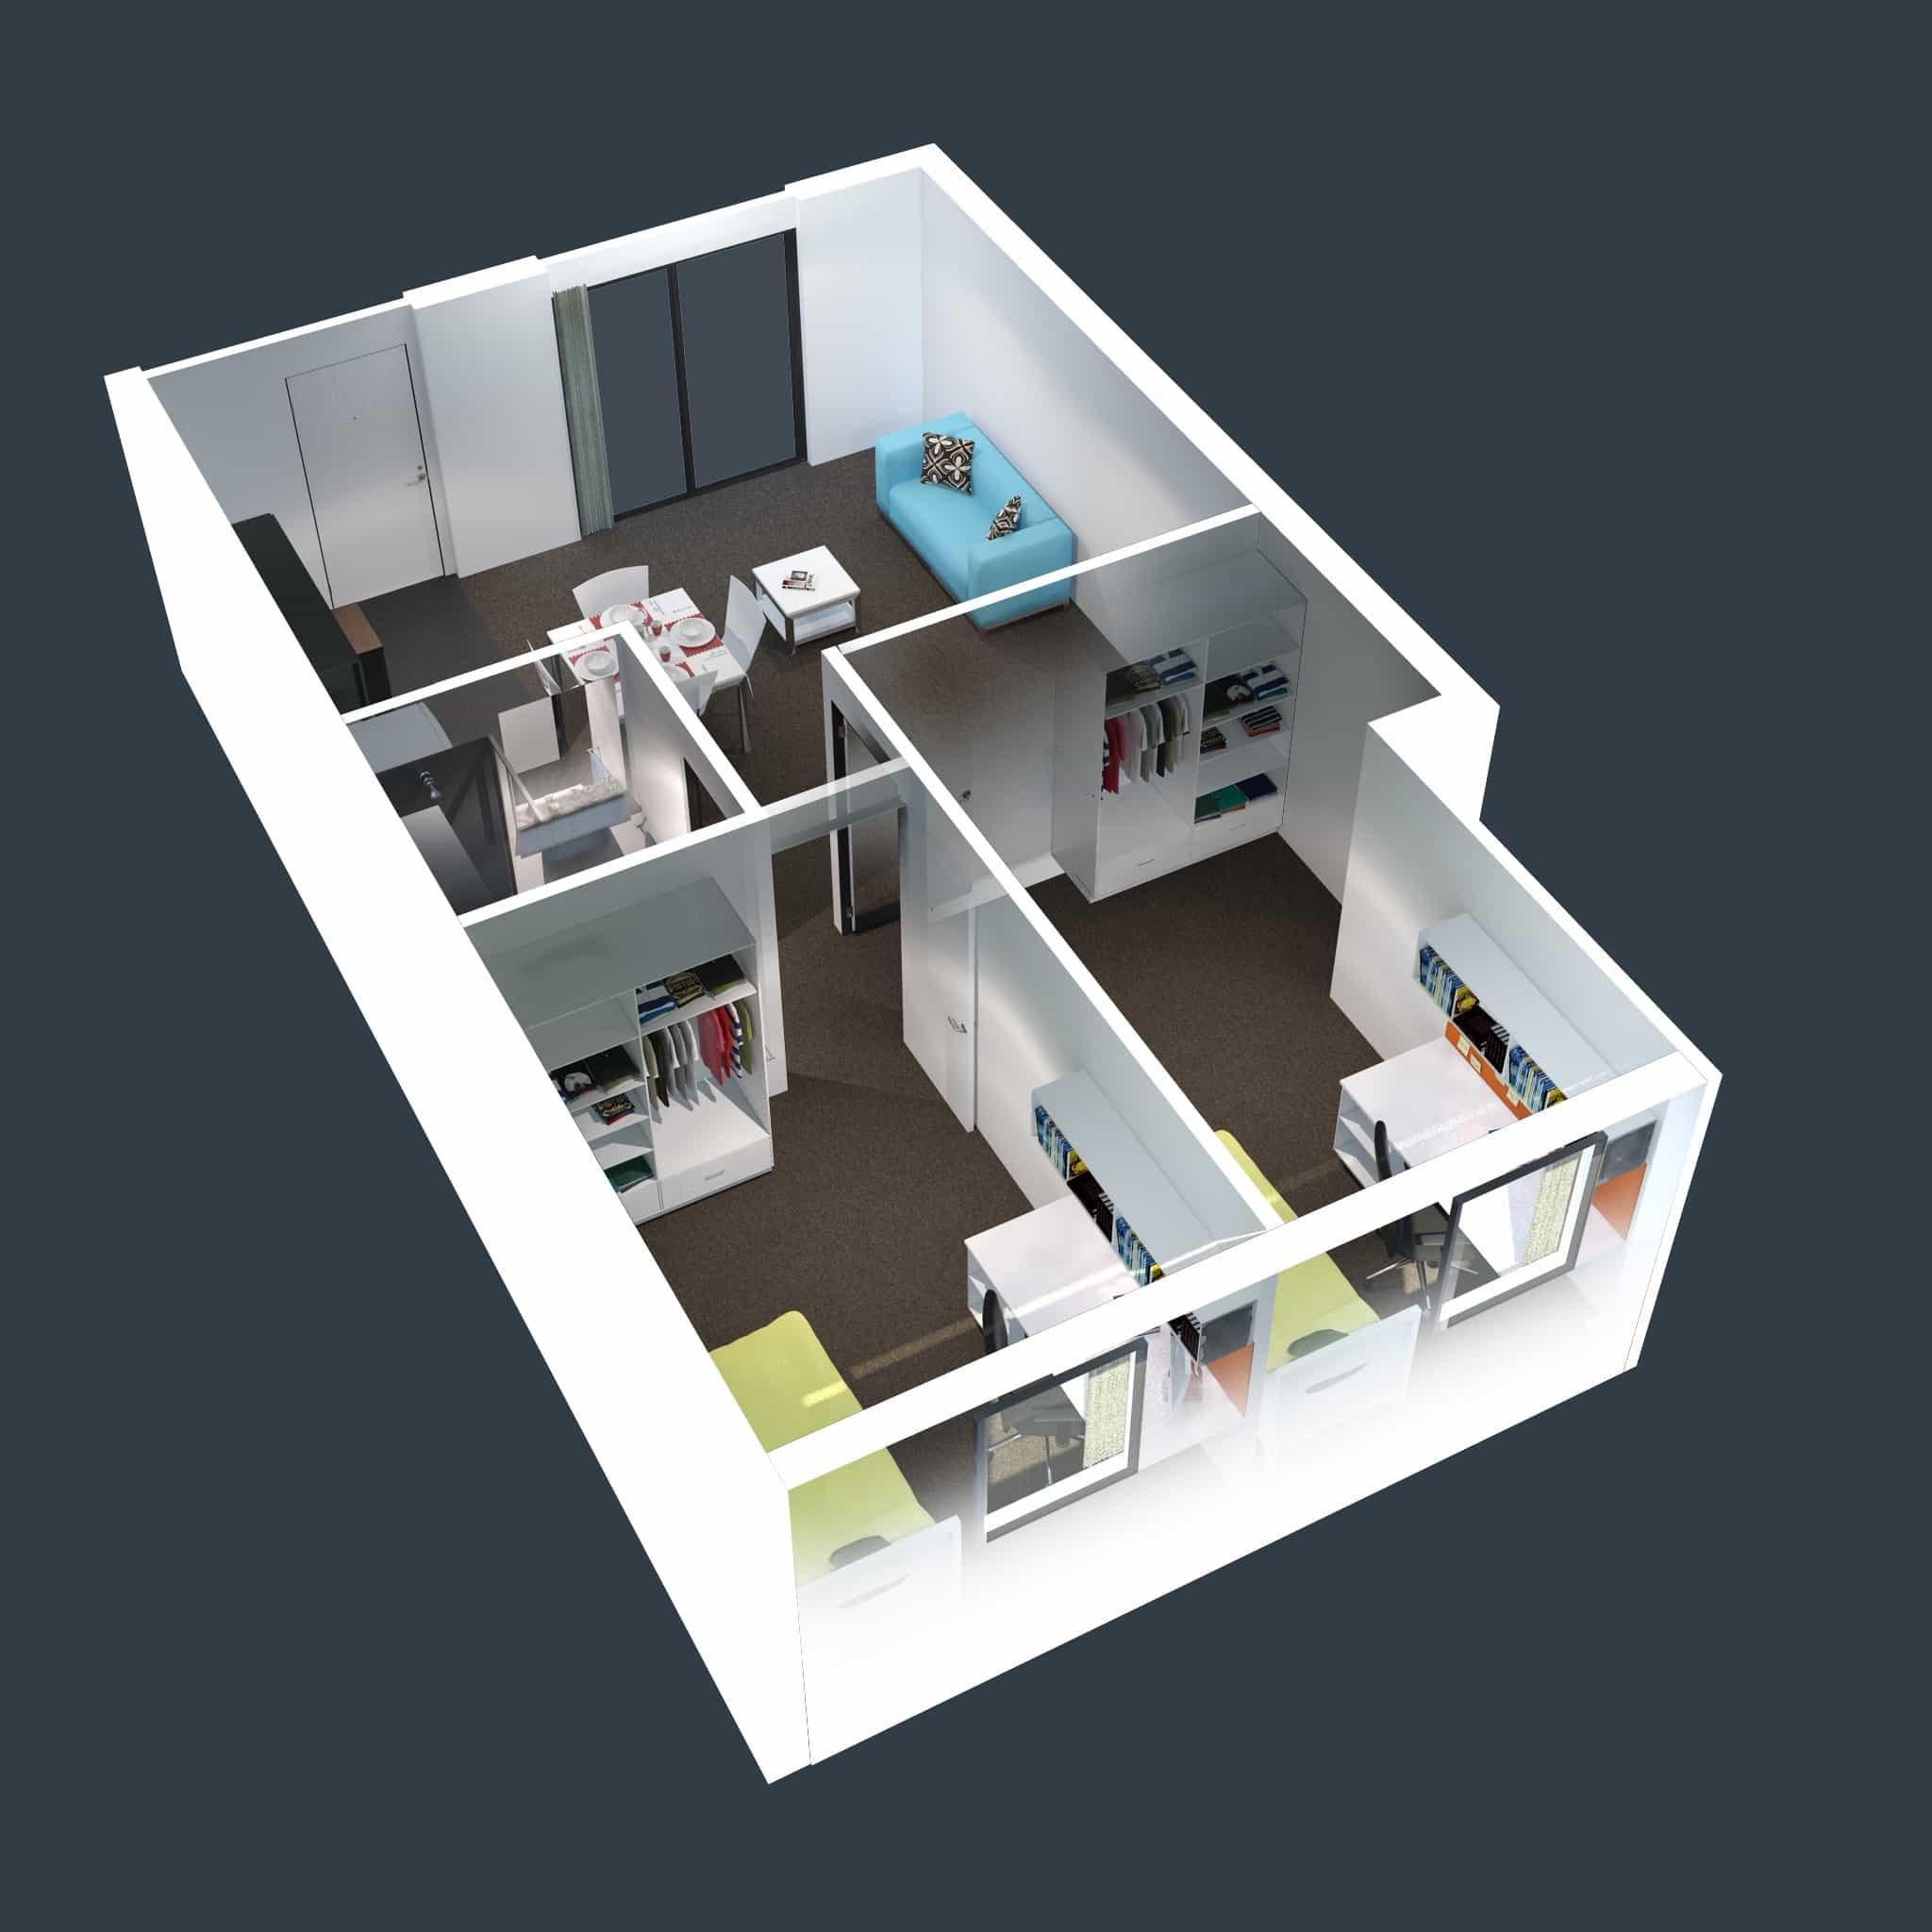 Two Bedroom Small House Layout Plans 3D (Image 17 of 17)